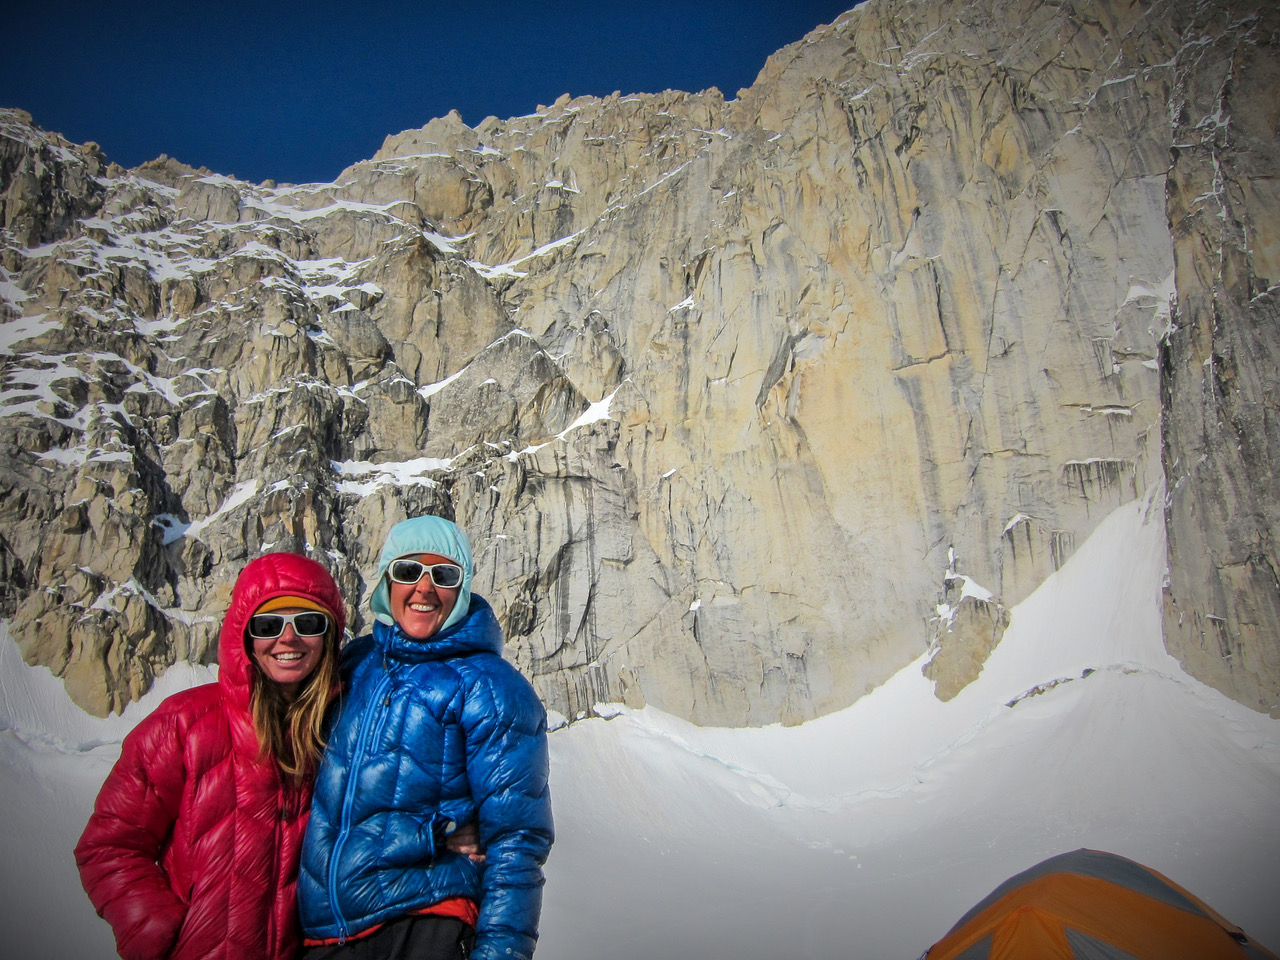 Jewell Lund (left) and Chantel Astorga below the Denali Diamond on the southwest face of North America's highest peak.